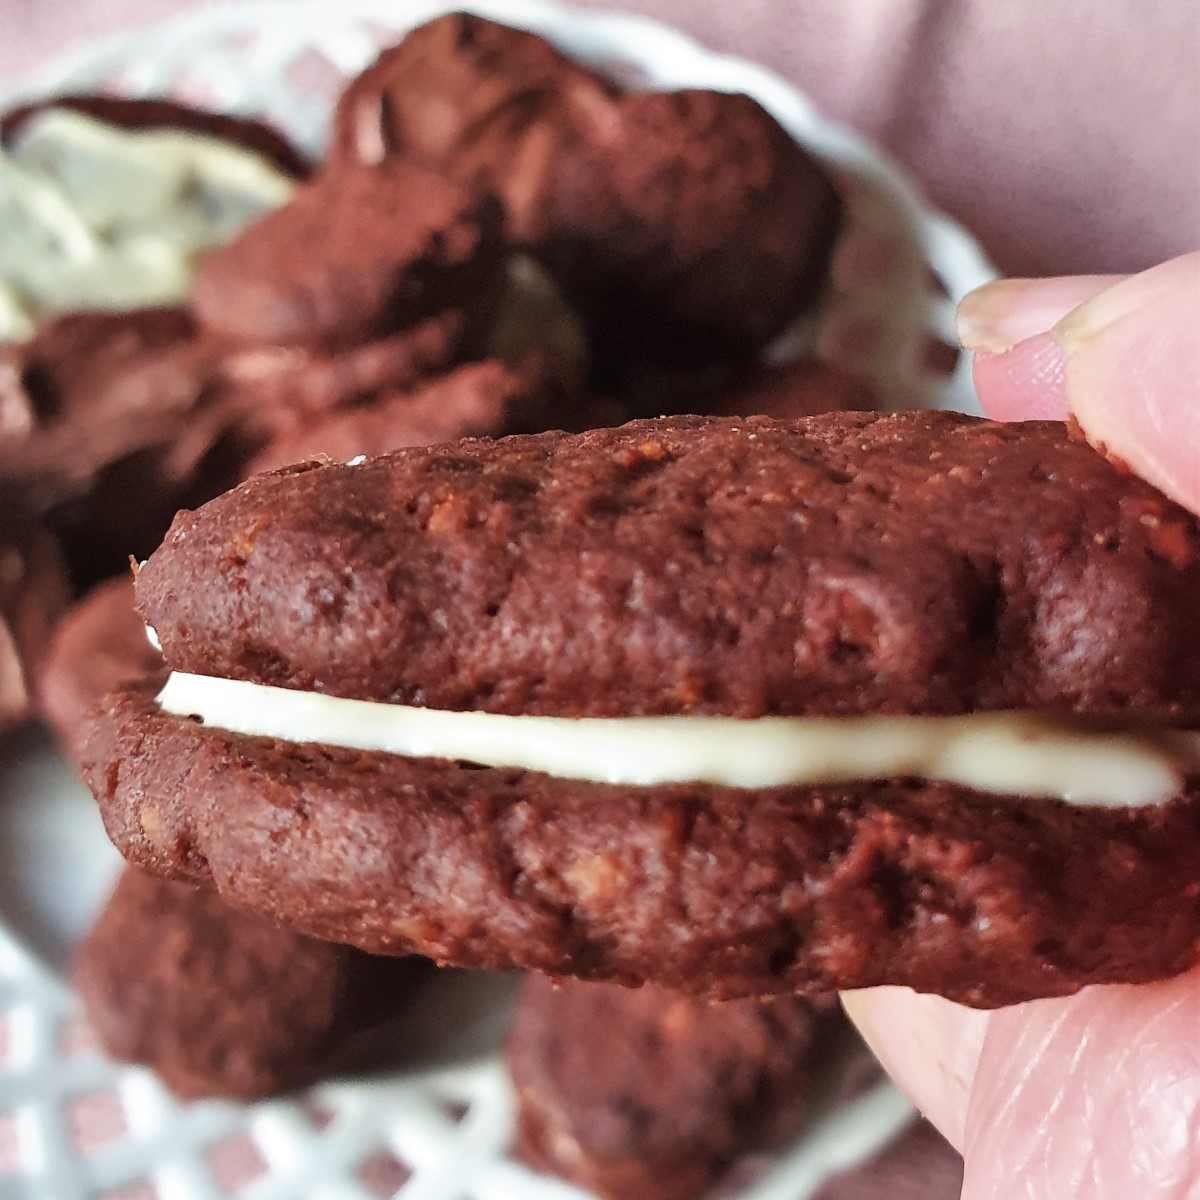 A close up of a romany cream biscuit sandwiched with white chocolate.